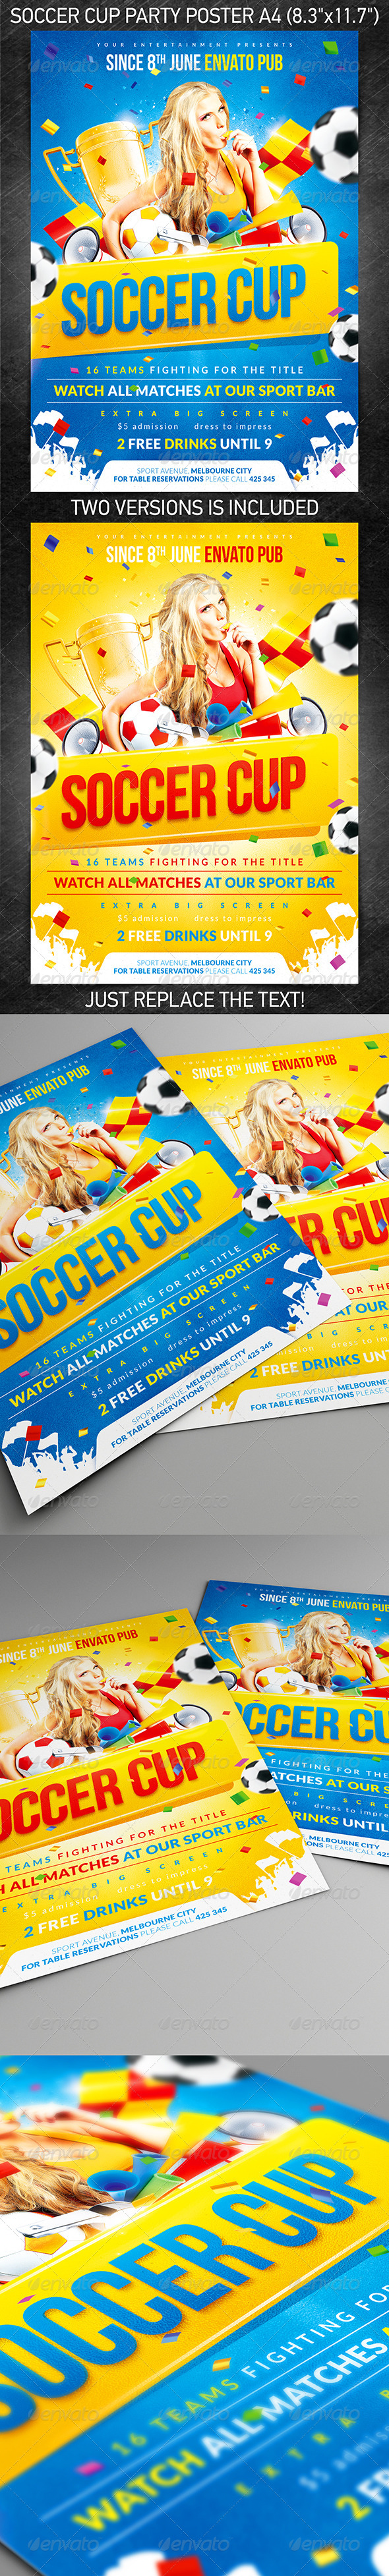 Soccer Cup party poster - Flyers Print Templates